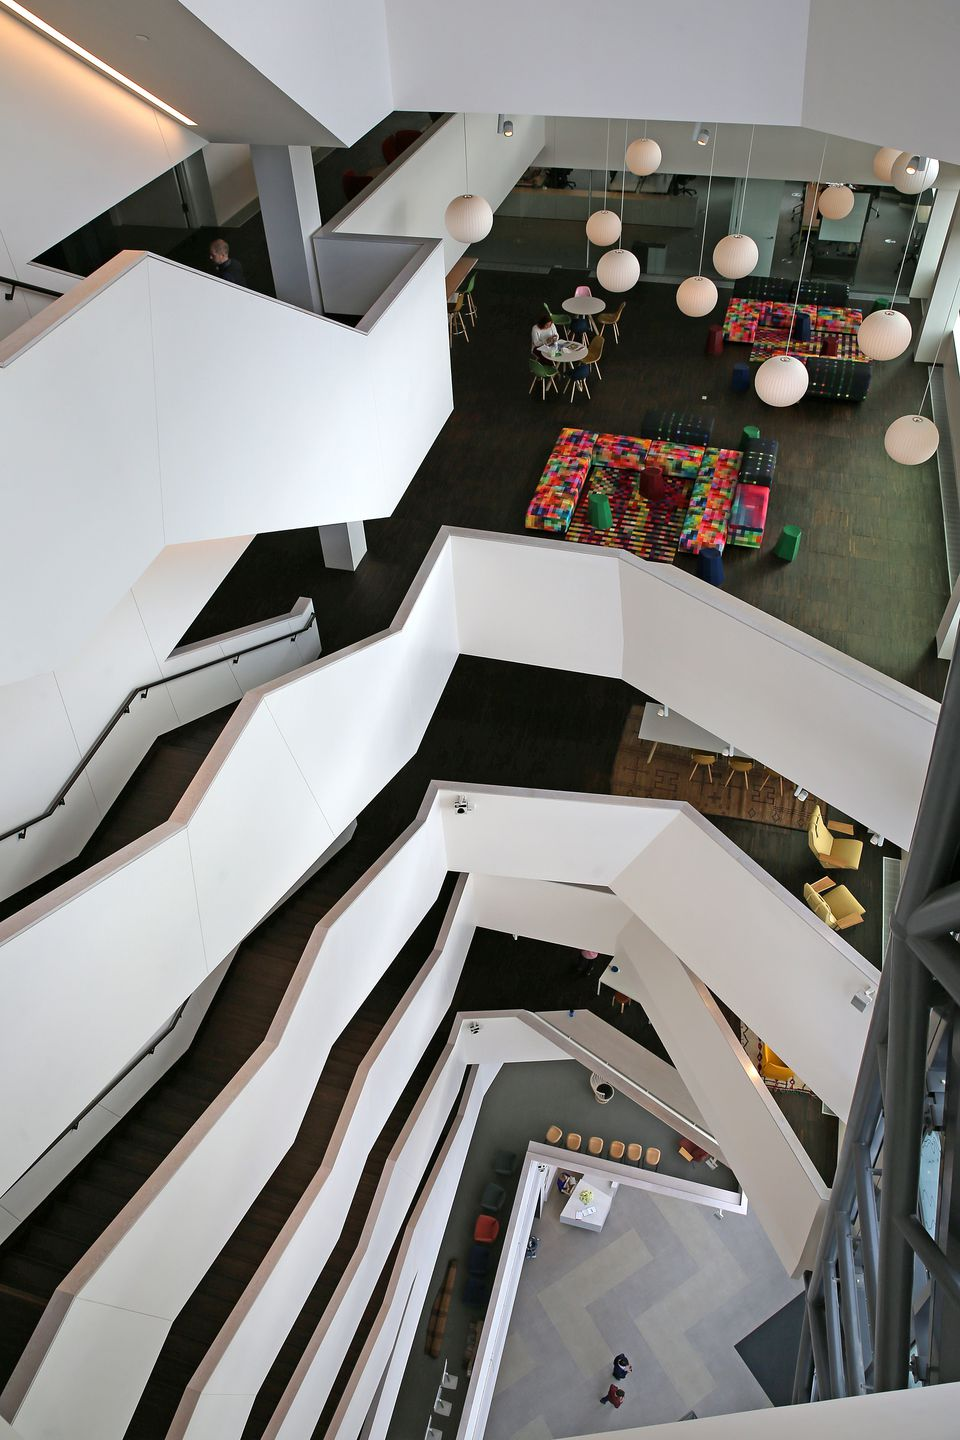 The building features an open staircase that serves all 10 floors and a glass-clad exterior.